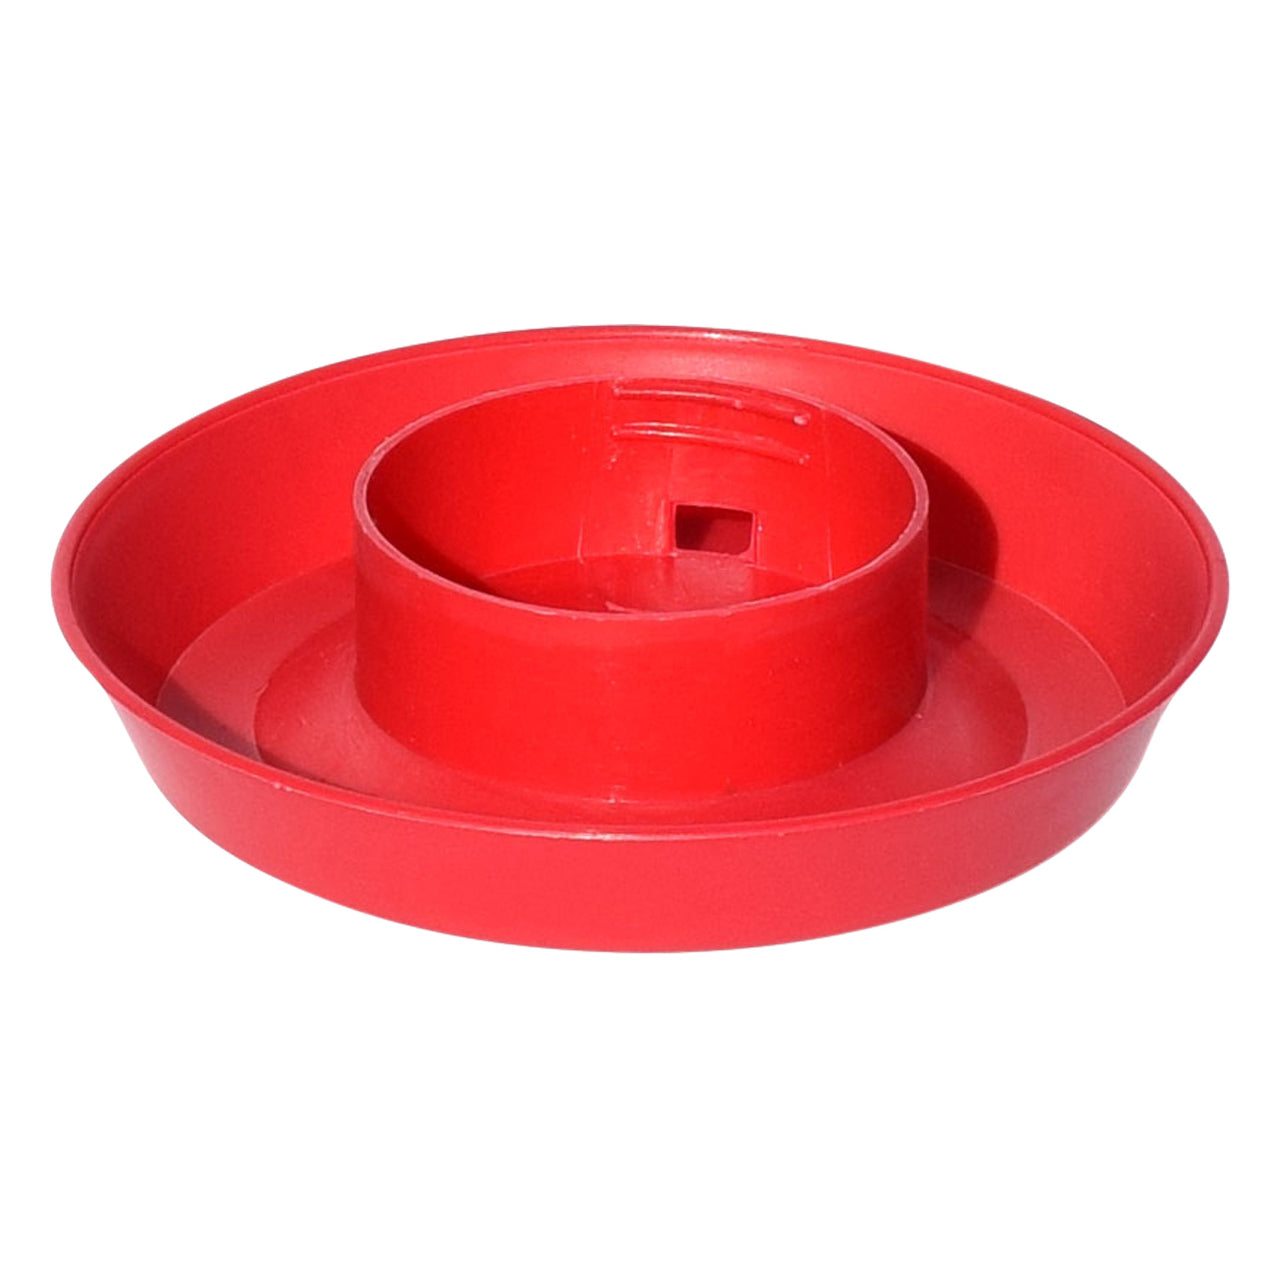 Tuff Stuff Enclosed Poultry Drinker 1 Qts Base (Red) - Poultry Feeders Drinkers Tuff Stuff - Canada